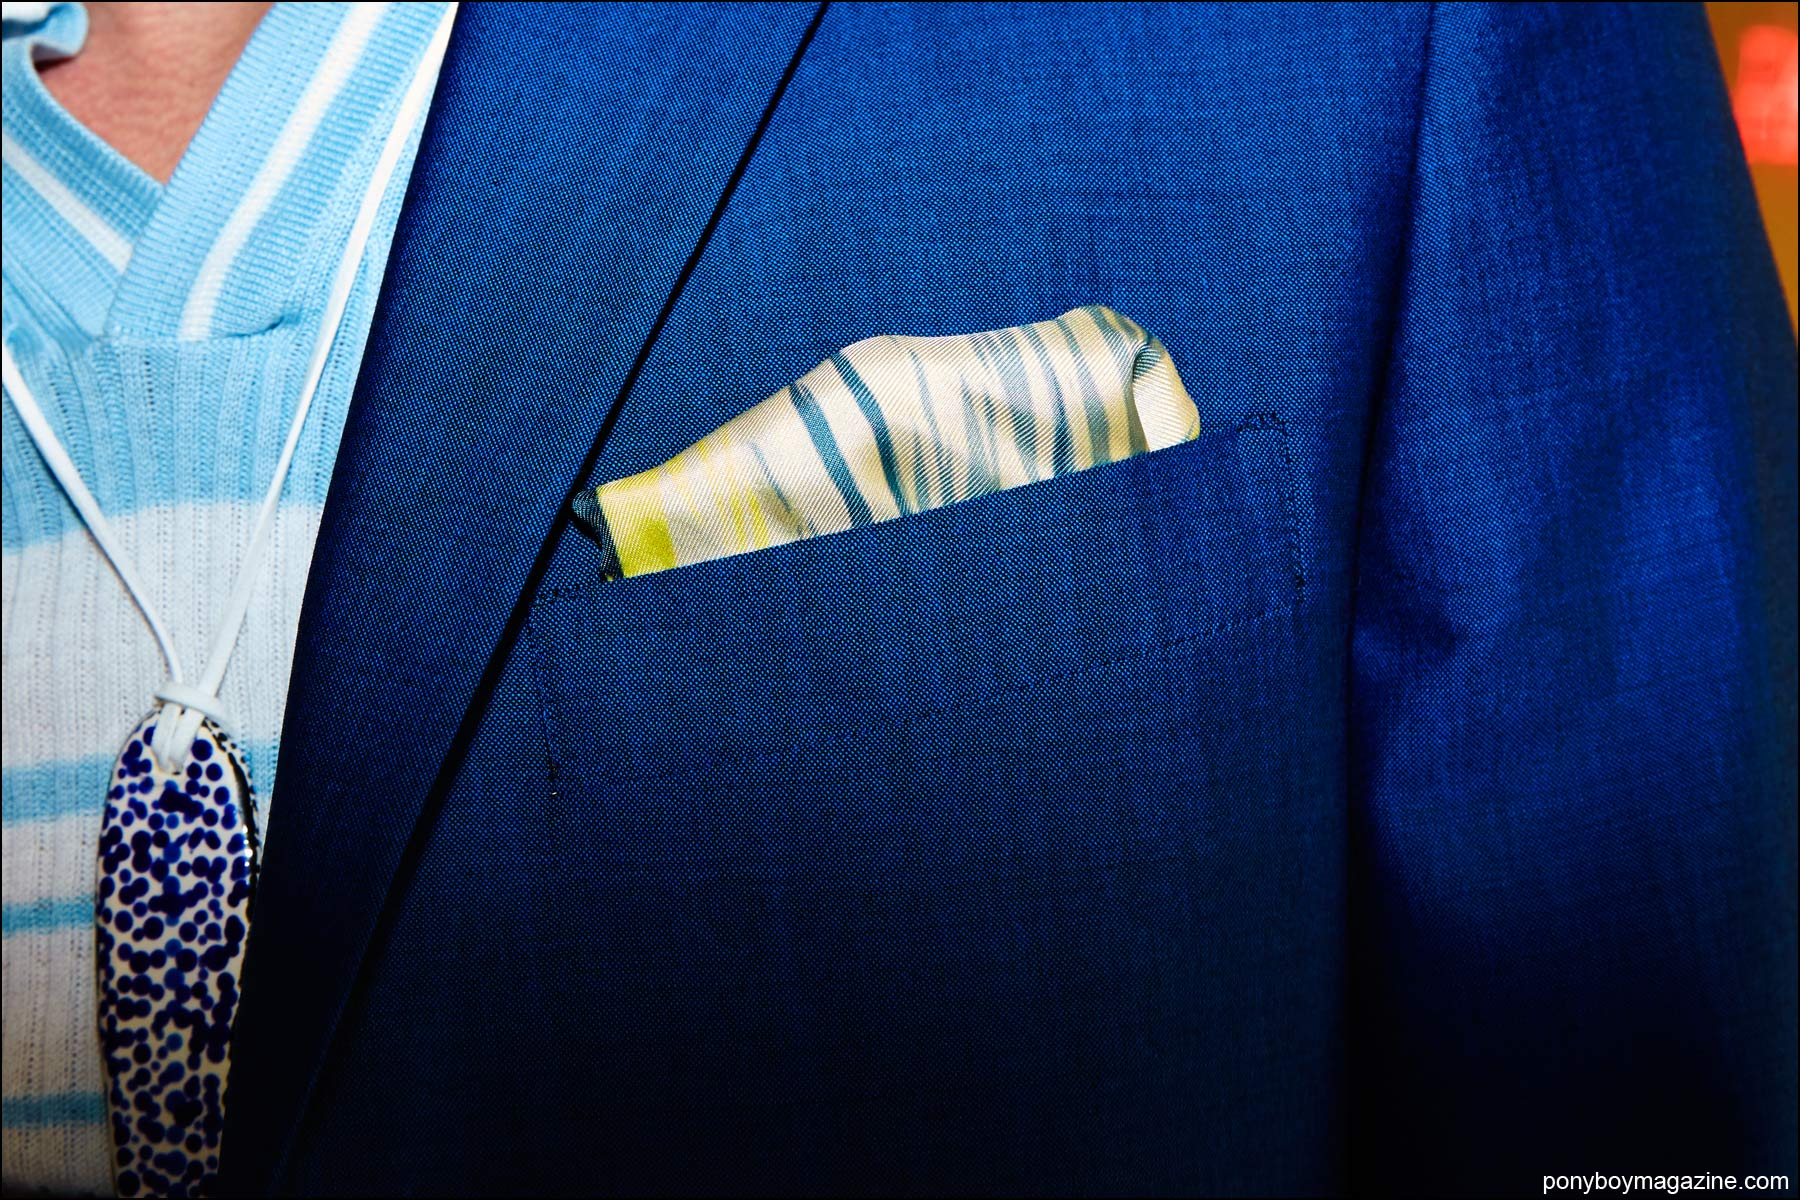 A detail shot of a pocket square, photographed backstage at David Hart S/S17 menswear show by Alexander Thompson for Ponyboy magazine NY.